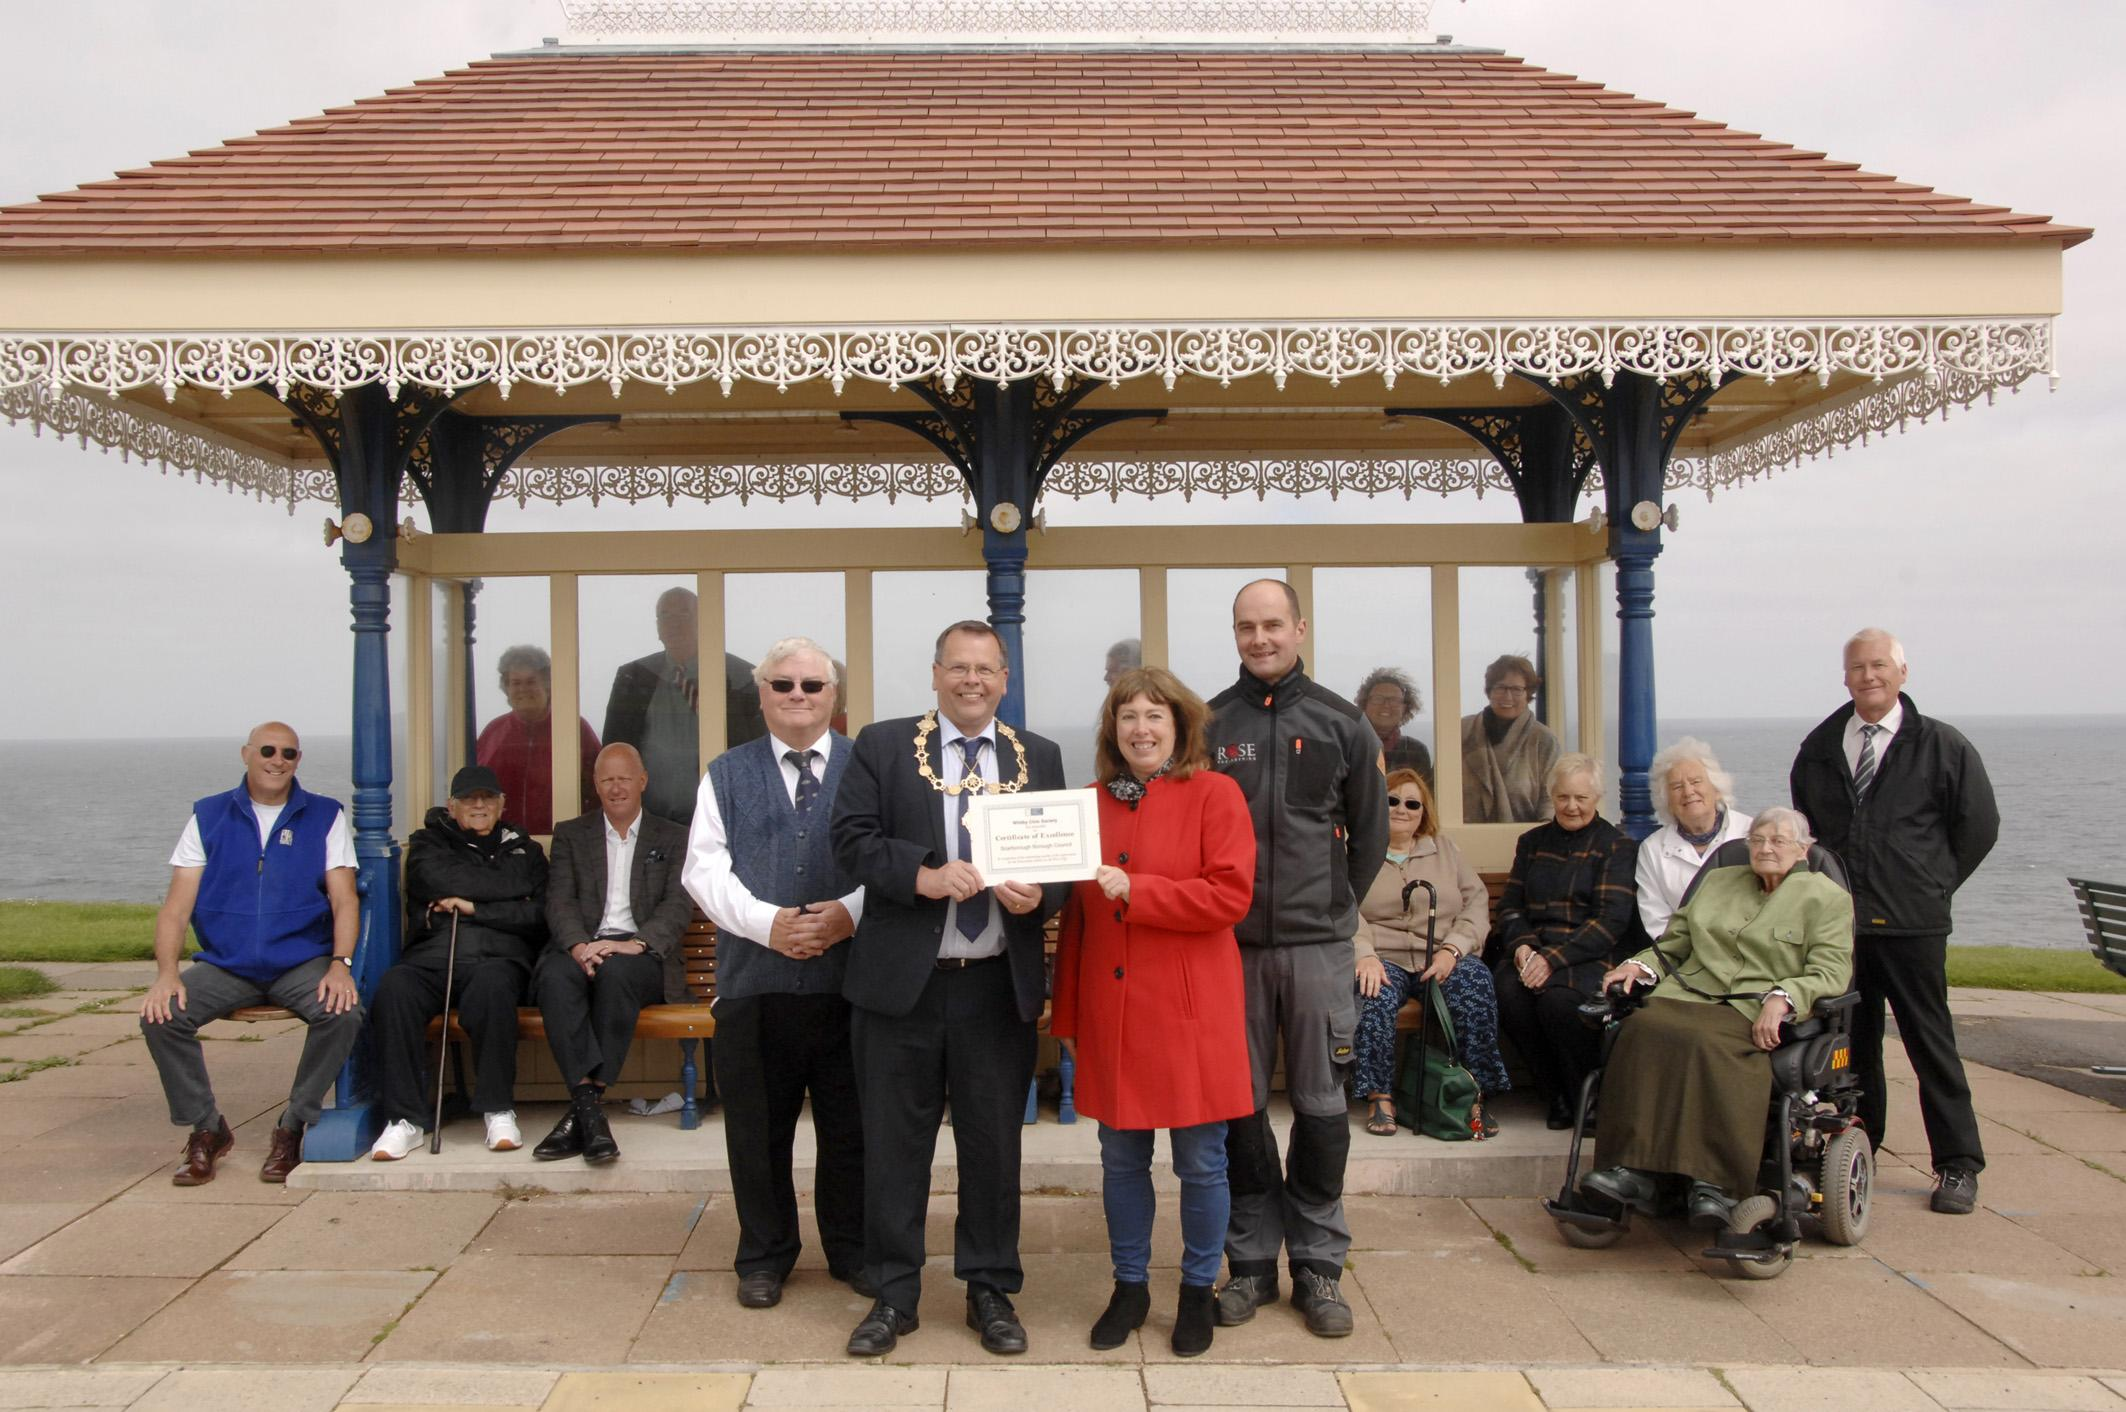 Picture of presentation of certificate of excellence at Whitby West Cliff shelters